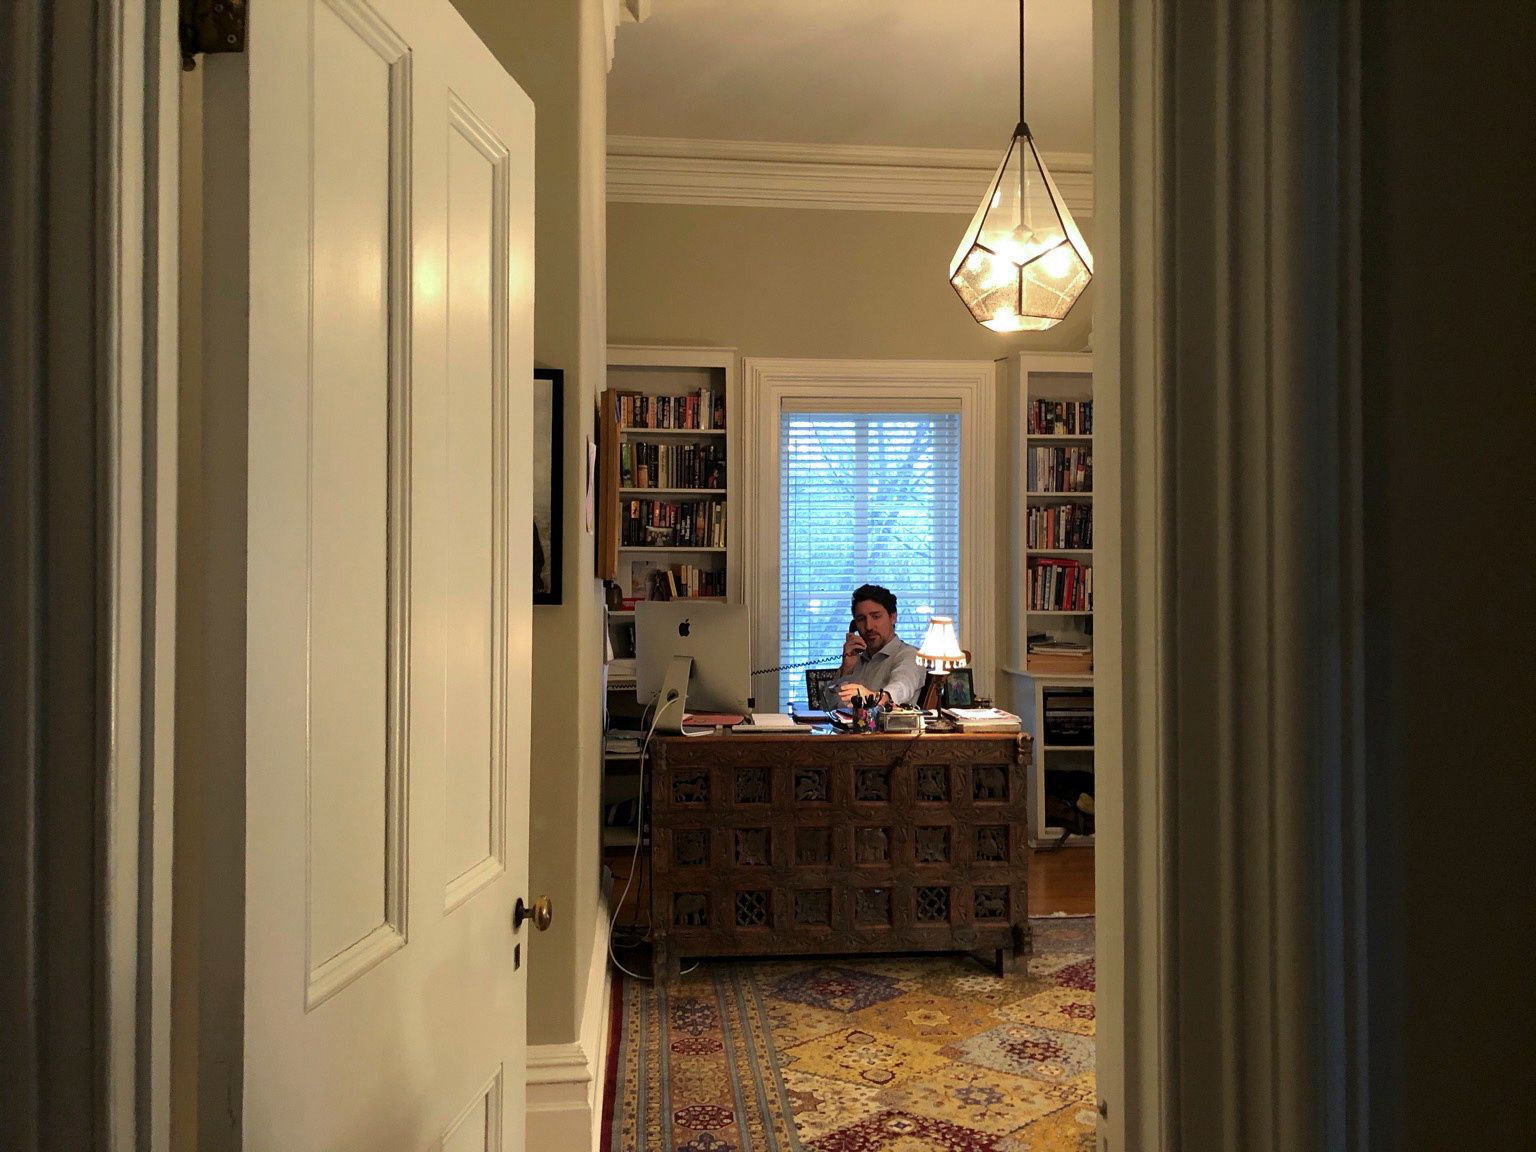 Canada?s Prime Minister Justin Trudeau works from his home office at Rideau Cottage, during his self-quarantine after his wife Sophie Gregoire tested positive for novel coronavirus, in Ottawa